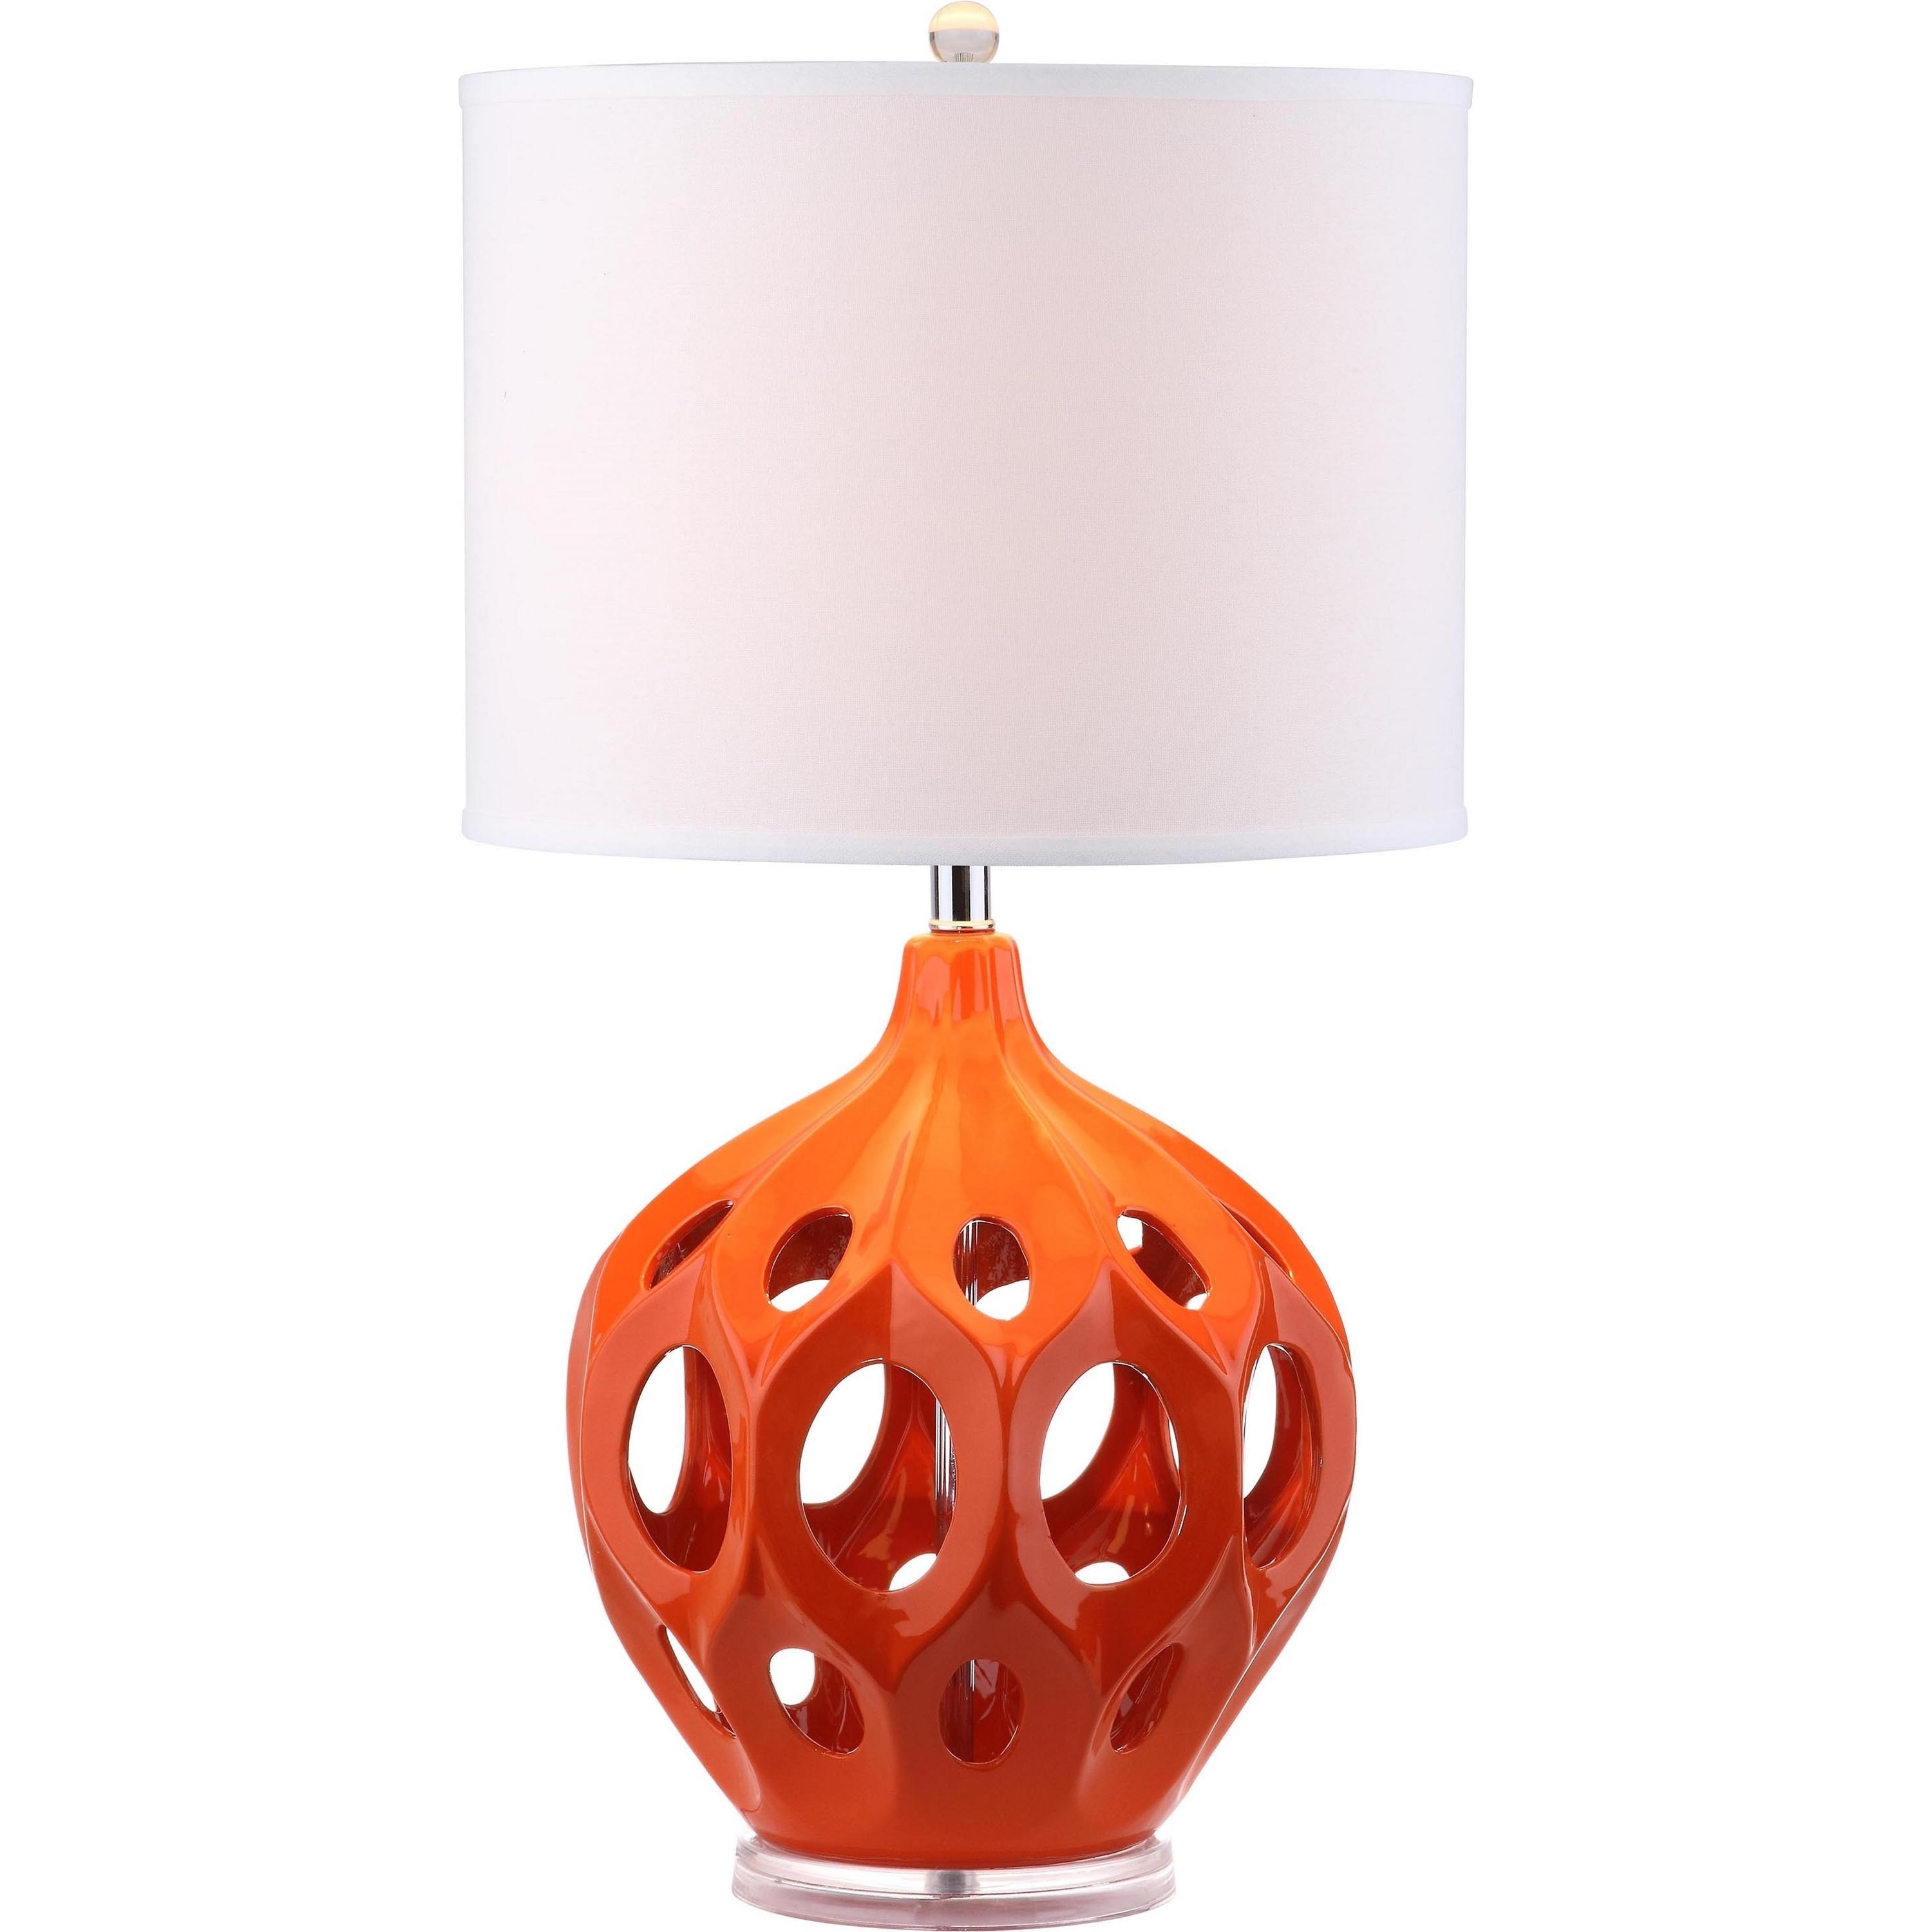 pages lamps table ludovica palomba hivemodern orange foscarini com birdie lamp